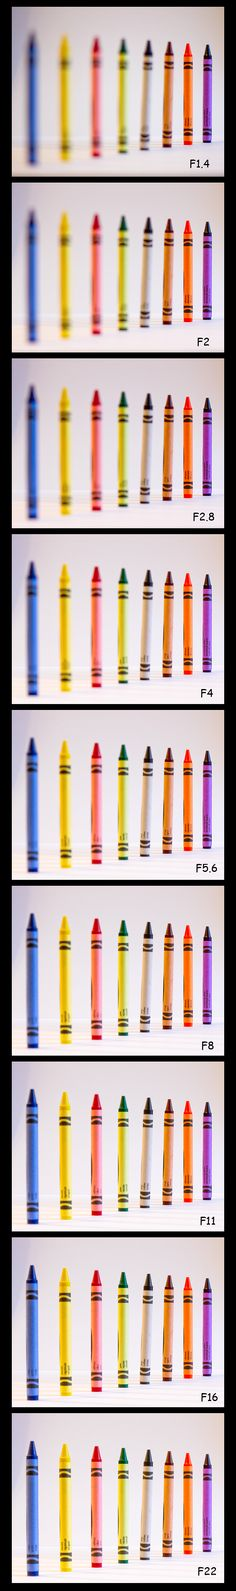 I know how aperture works but it's nice to have a visual for the different ranges.